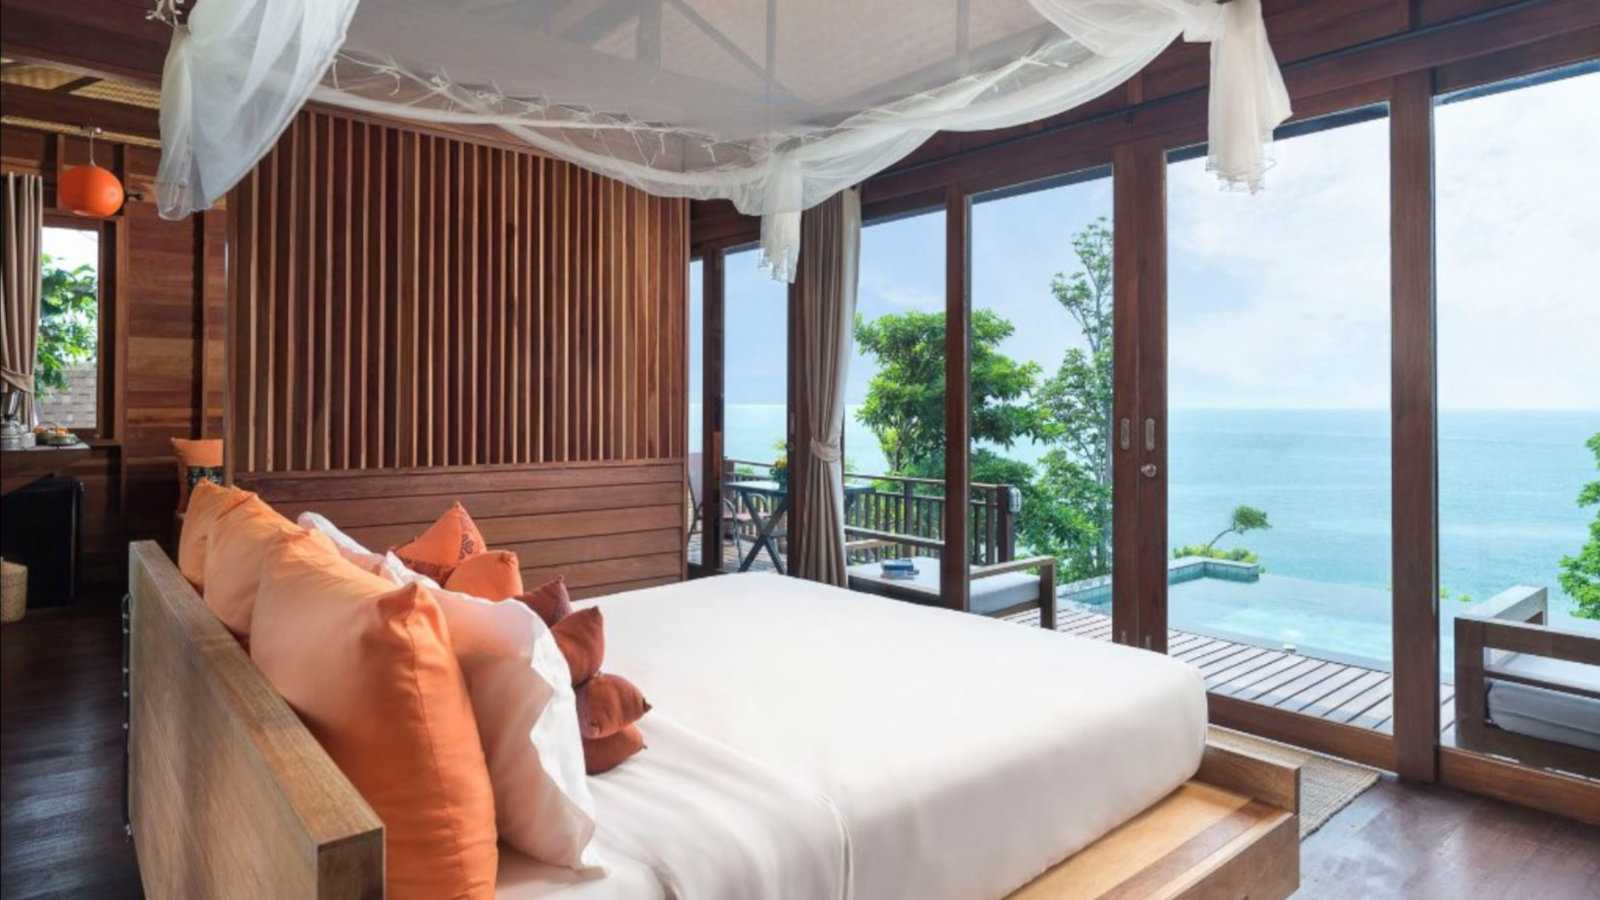 The Serendipity Resort on Thailand's Koh Lipe is super romantic with some villas having private infinite pools on the balcony